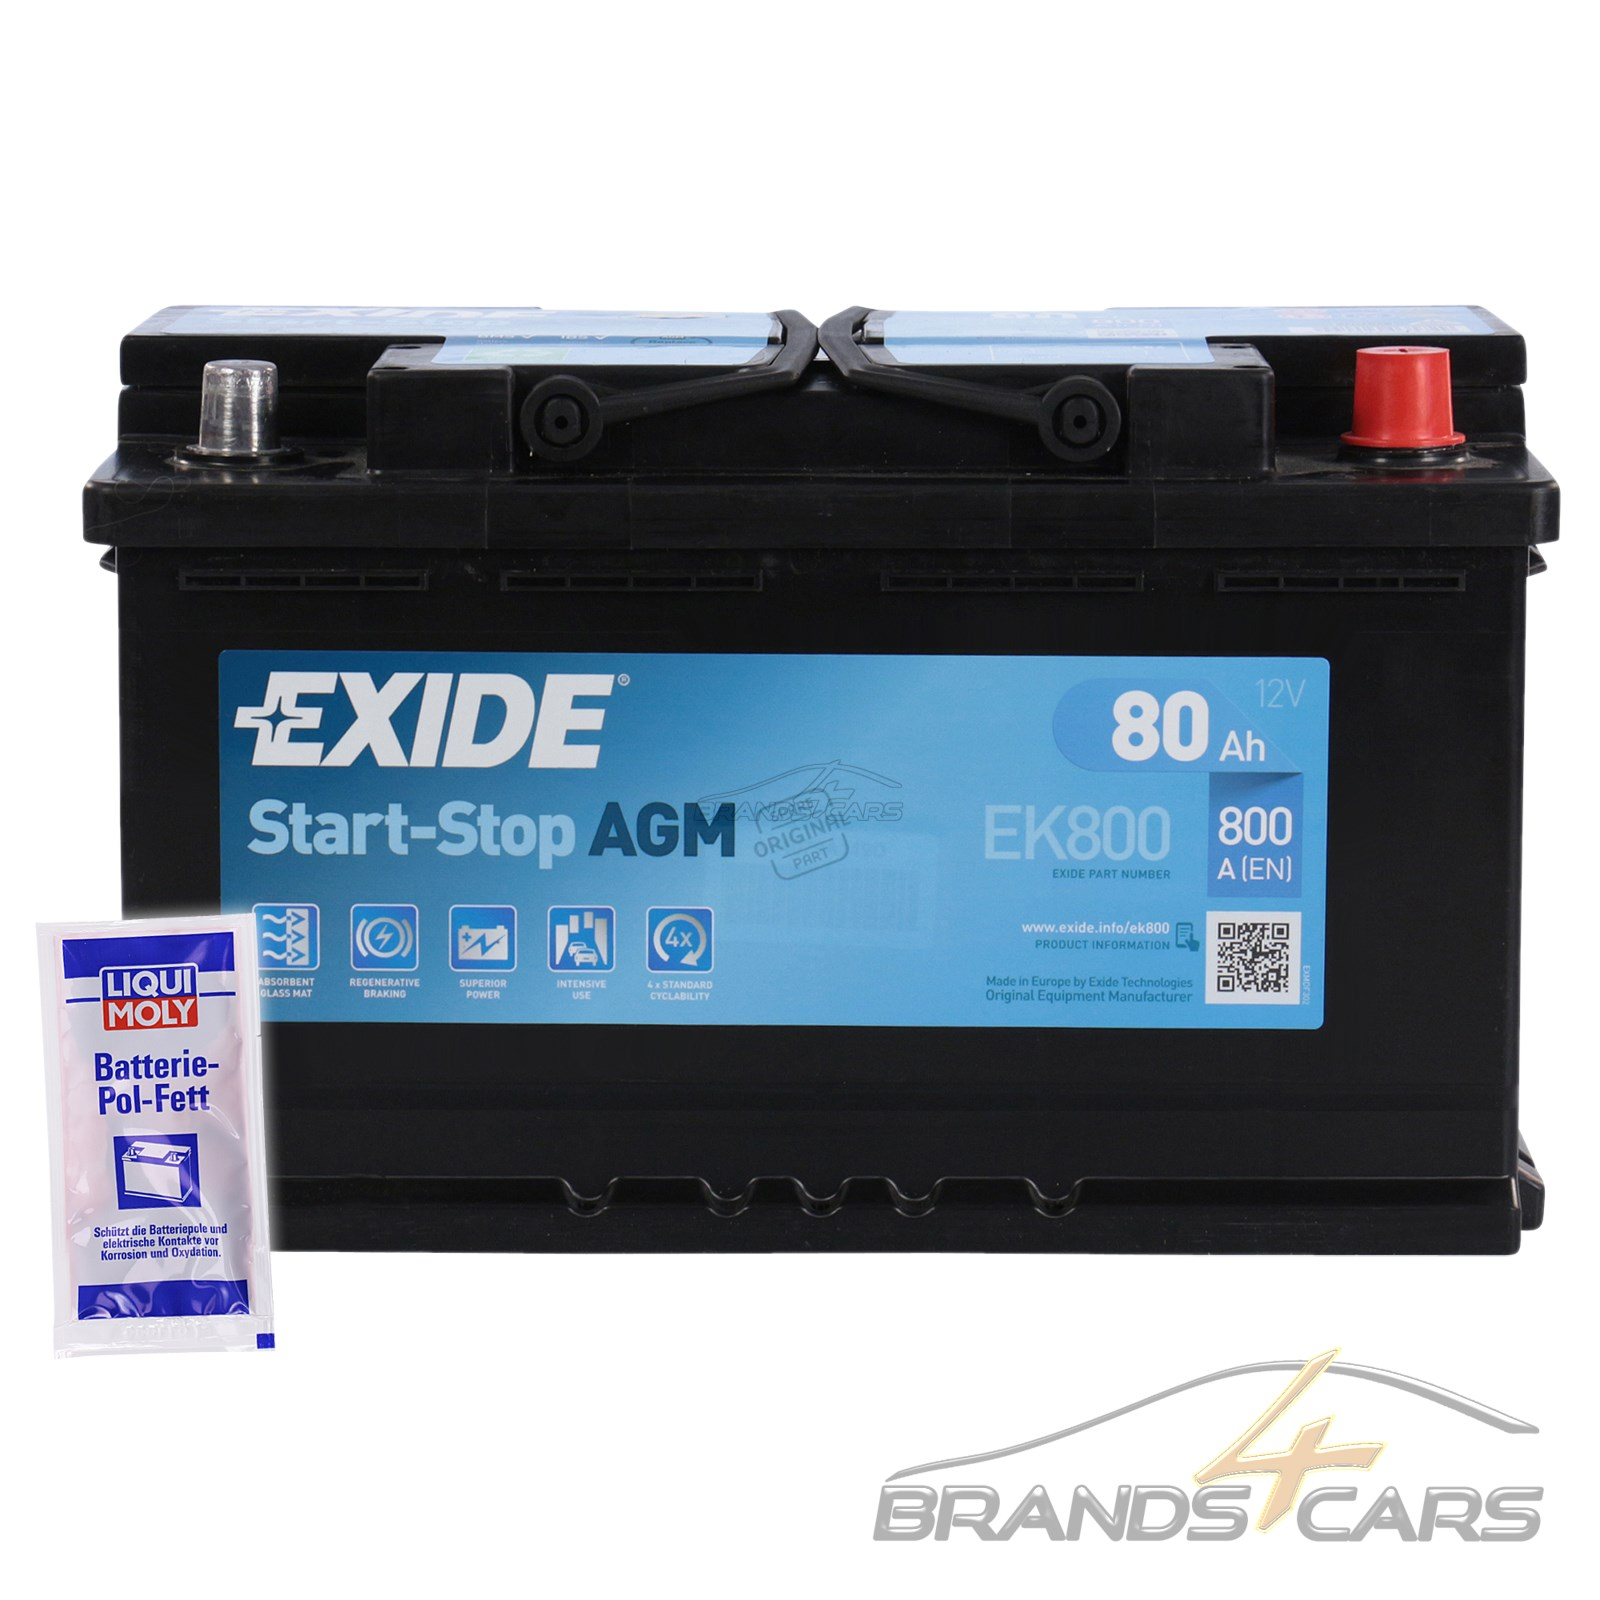 exide ek800 80ah 800ah start stop agm autobatterie. Black Bedroom Furniture Sets. Home Design Ideas